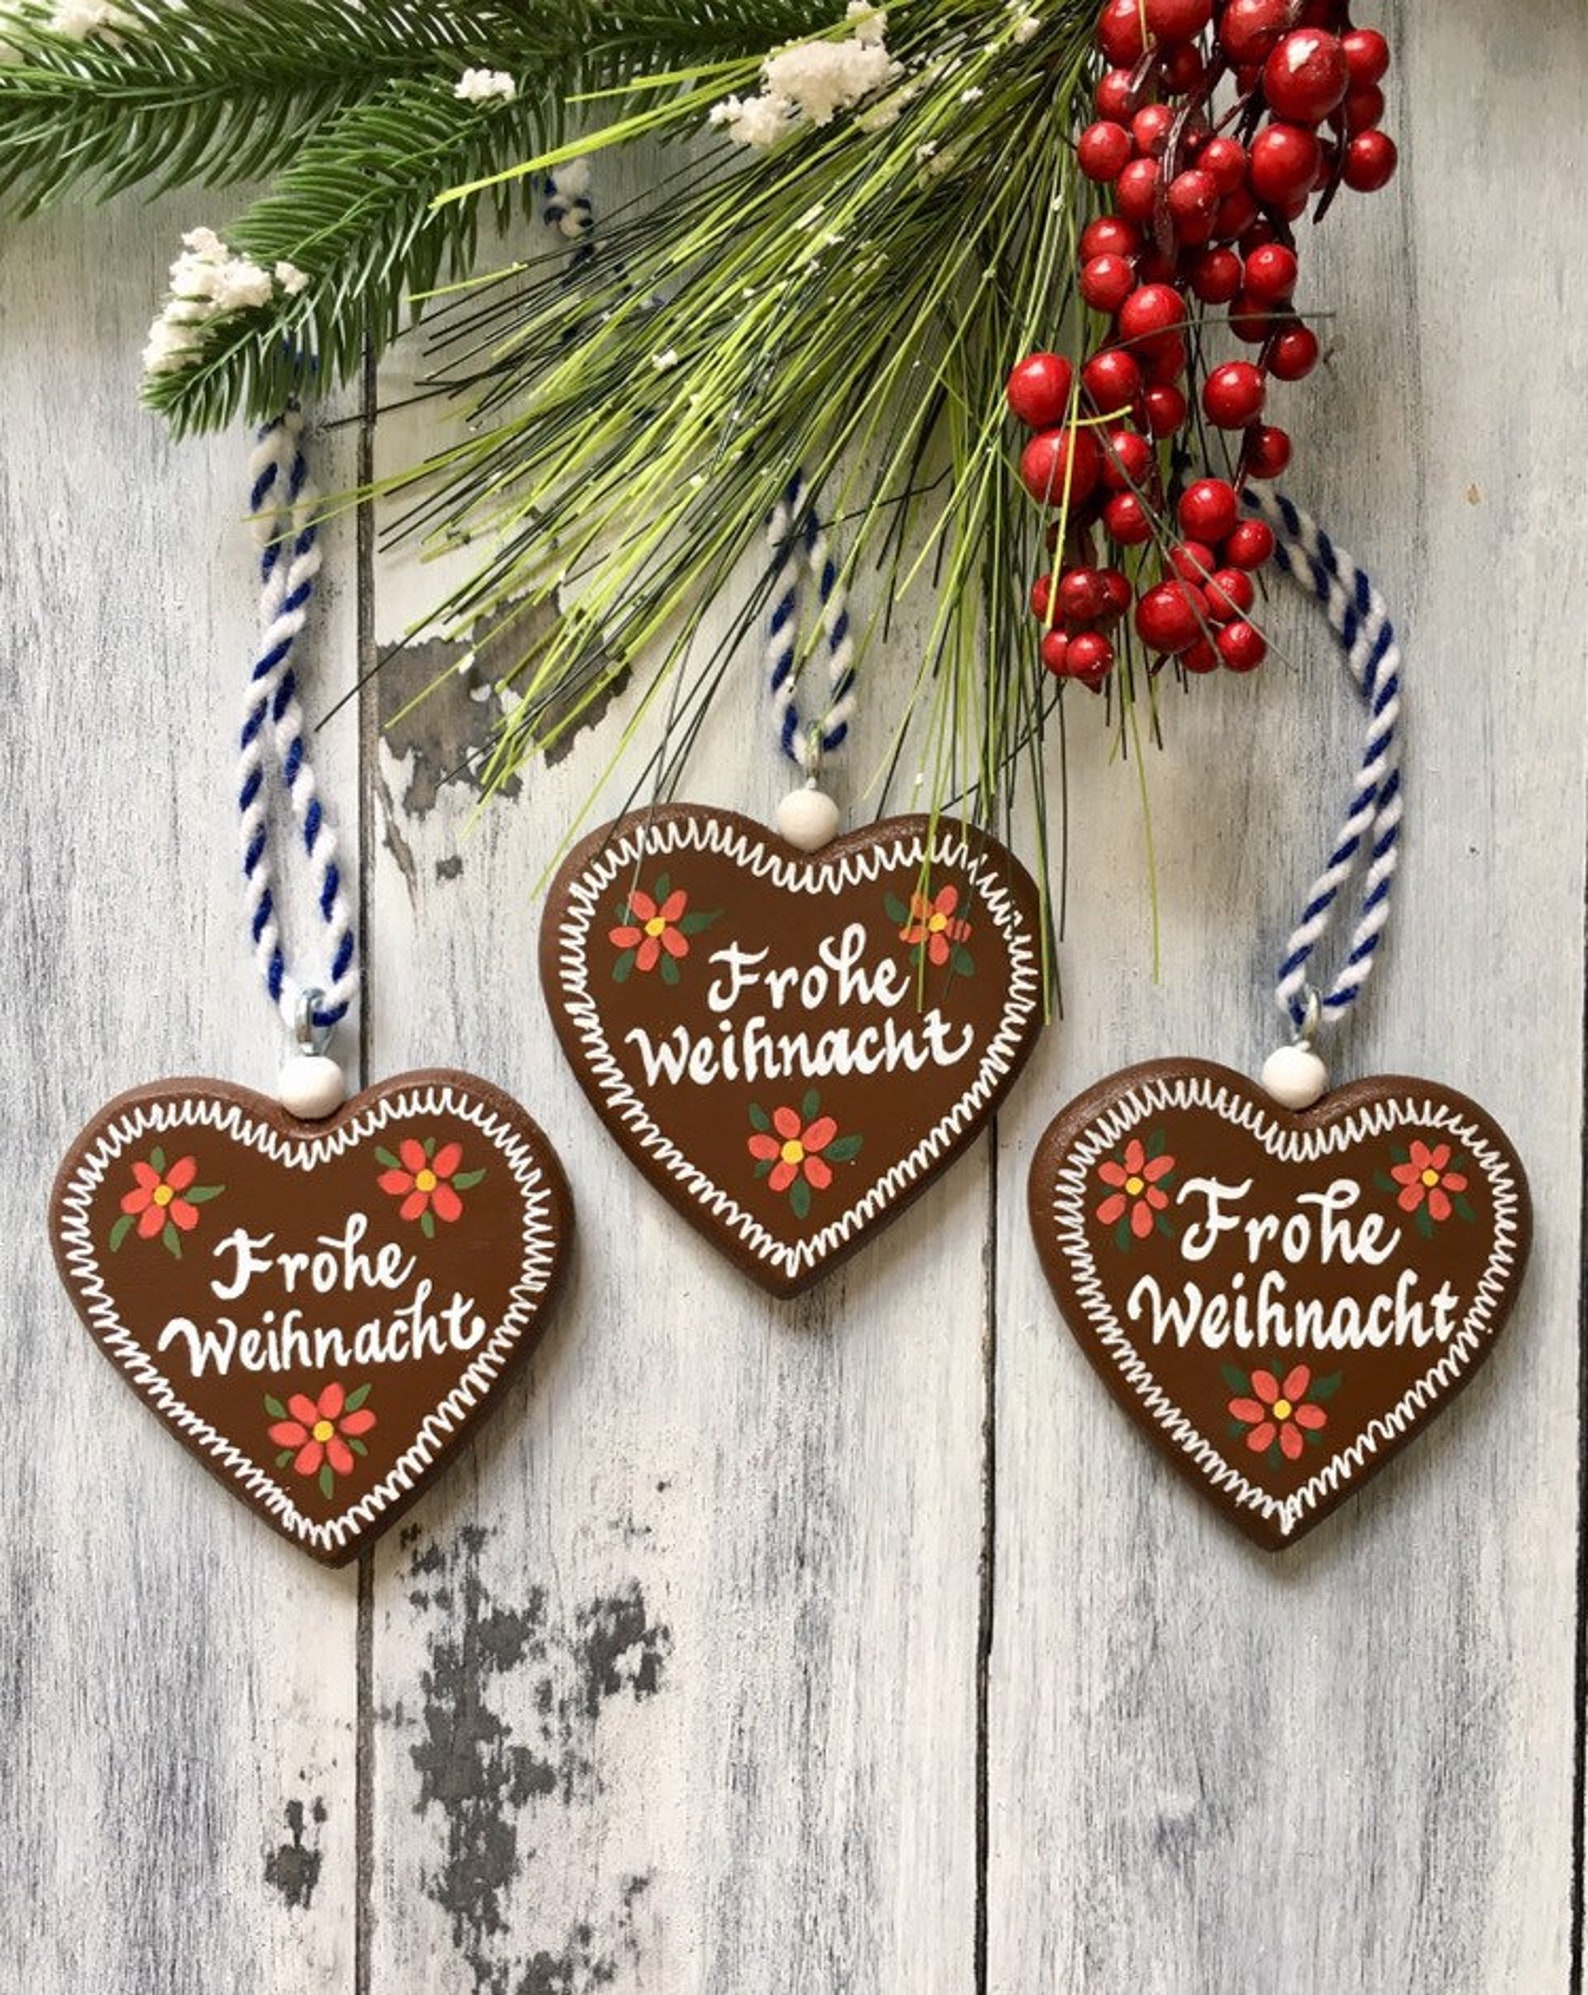 German Christmas Ornaments, German Ornaments, Frohe Weihnacht, German Gifts, Gingerbread Ornaments, Lebkuchen Ornament, Christmas Decoration